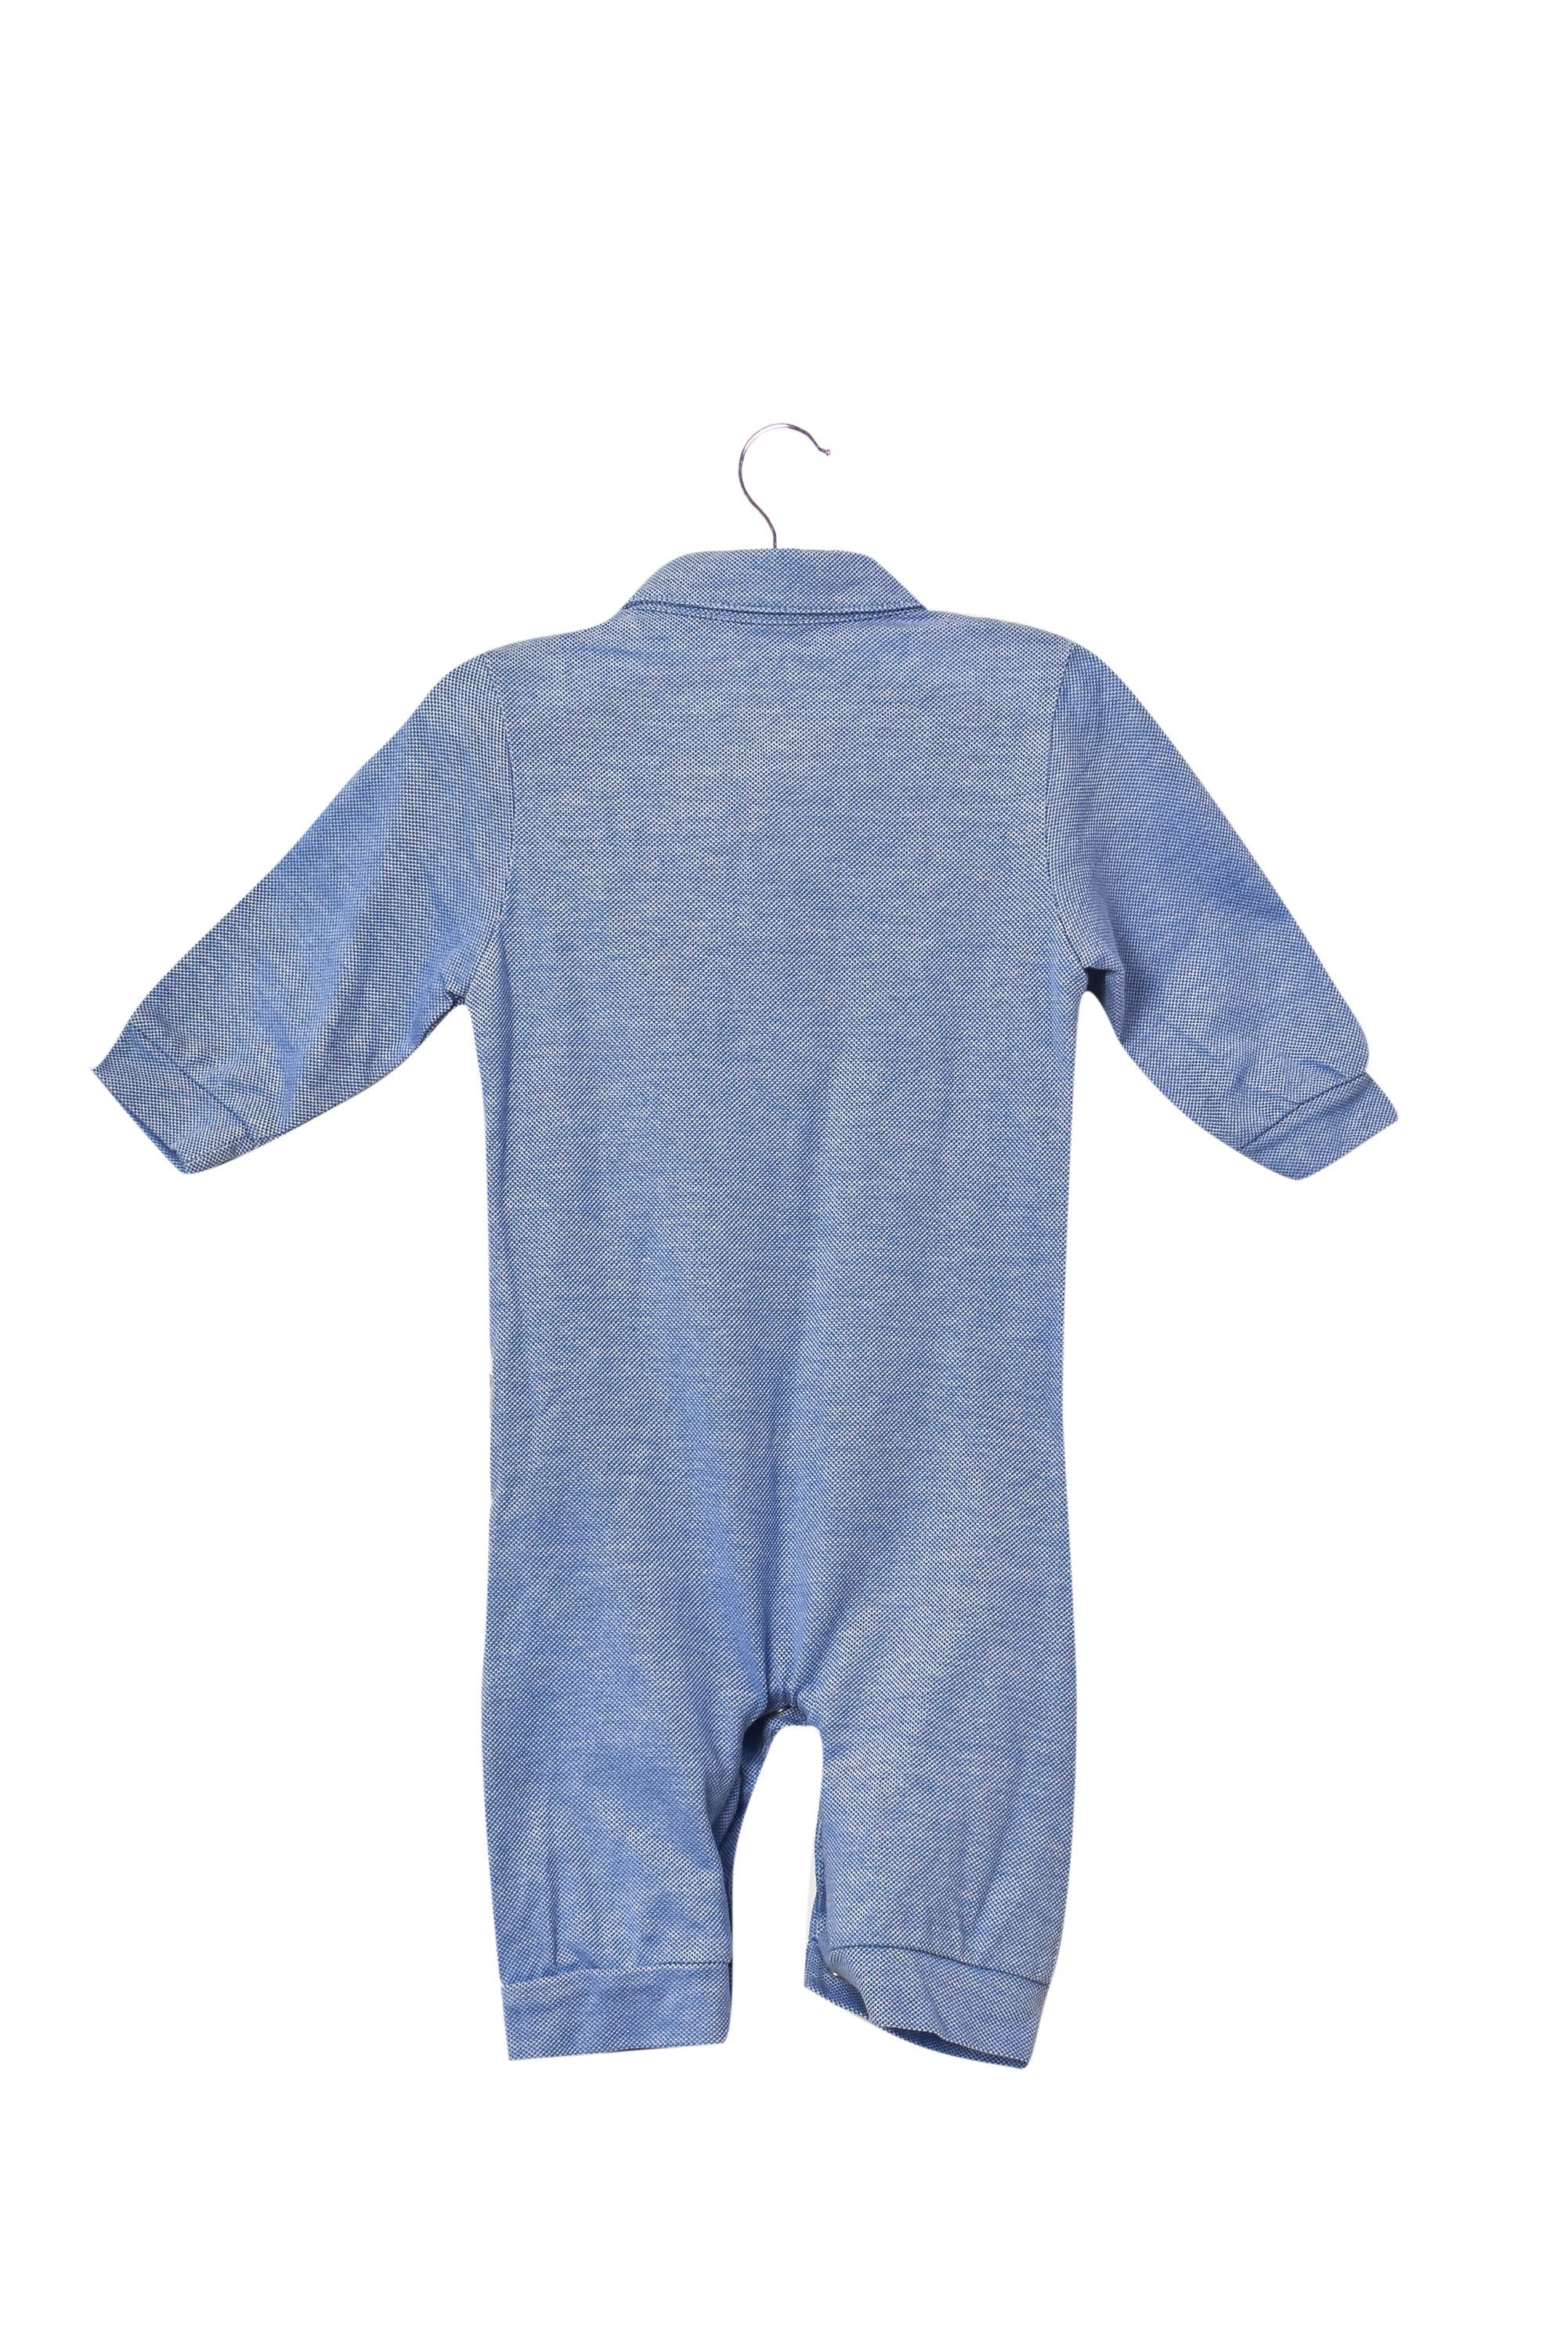 10040808 Nicholas & Bears Baby~Jumpsuit 6M at Retykle